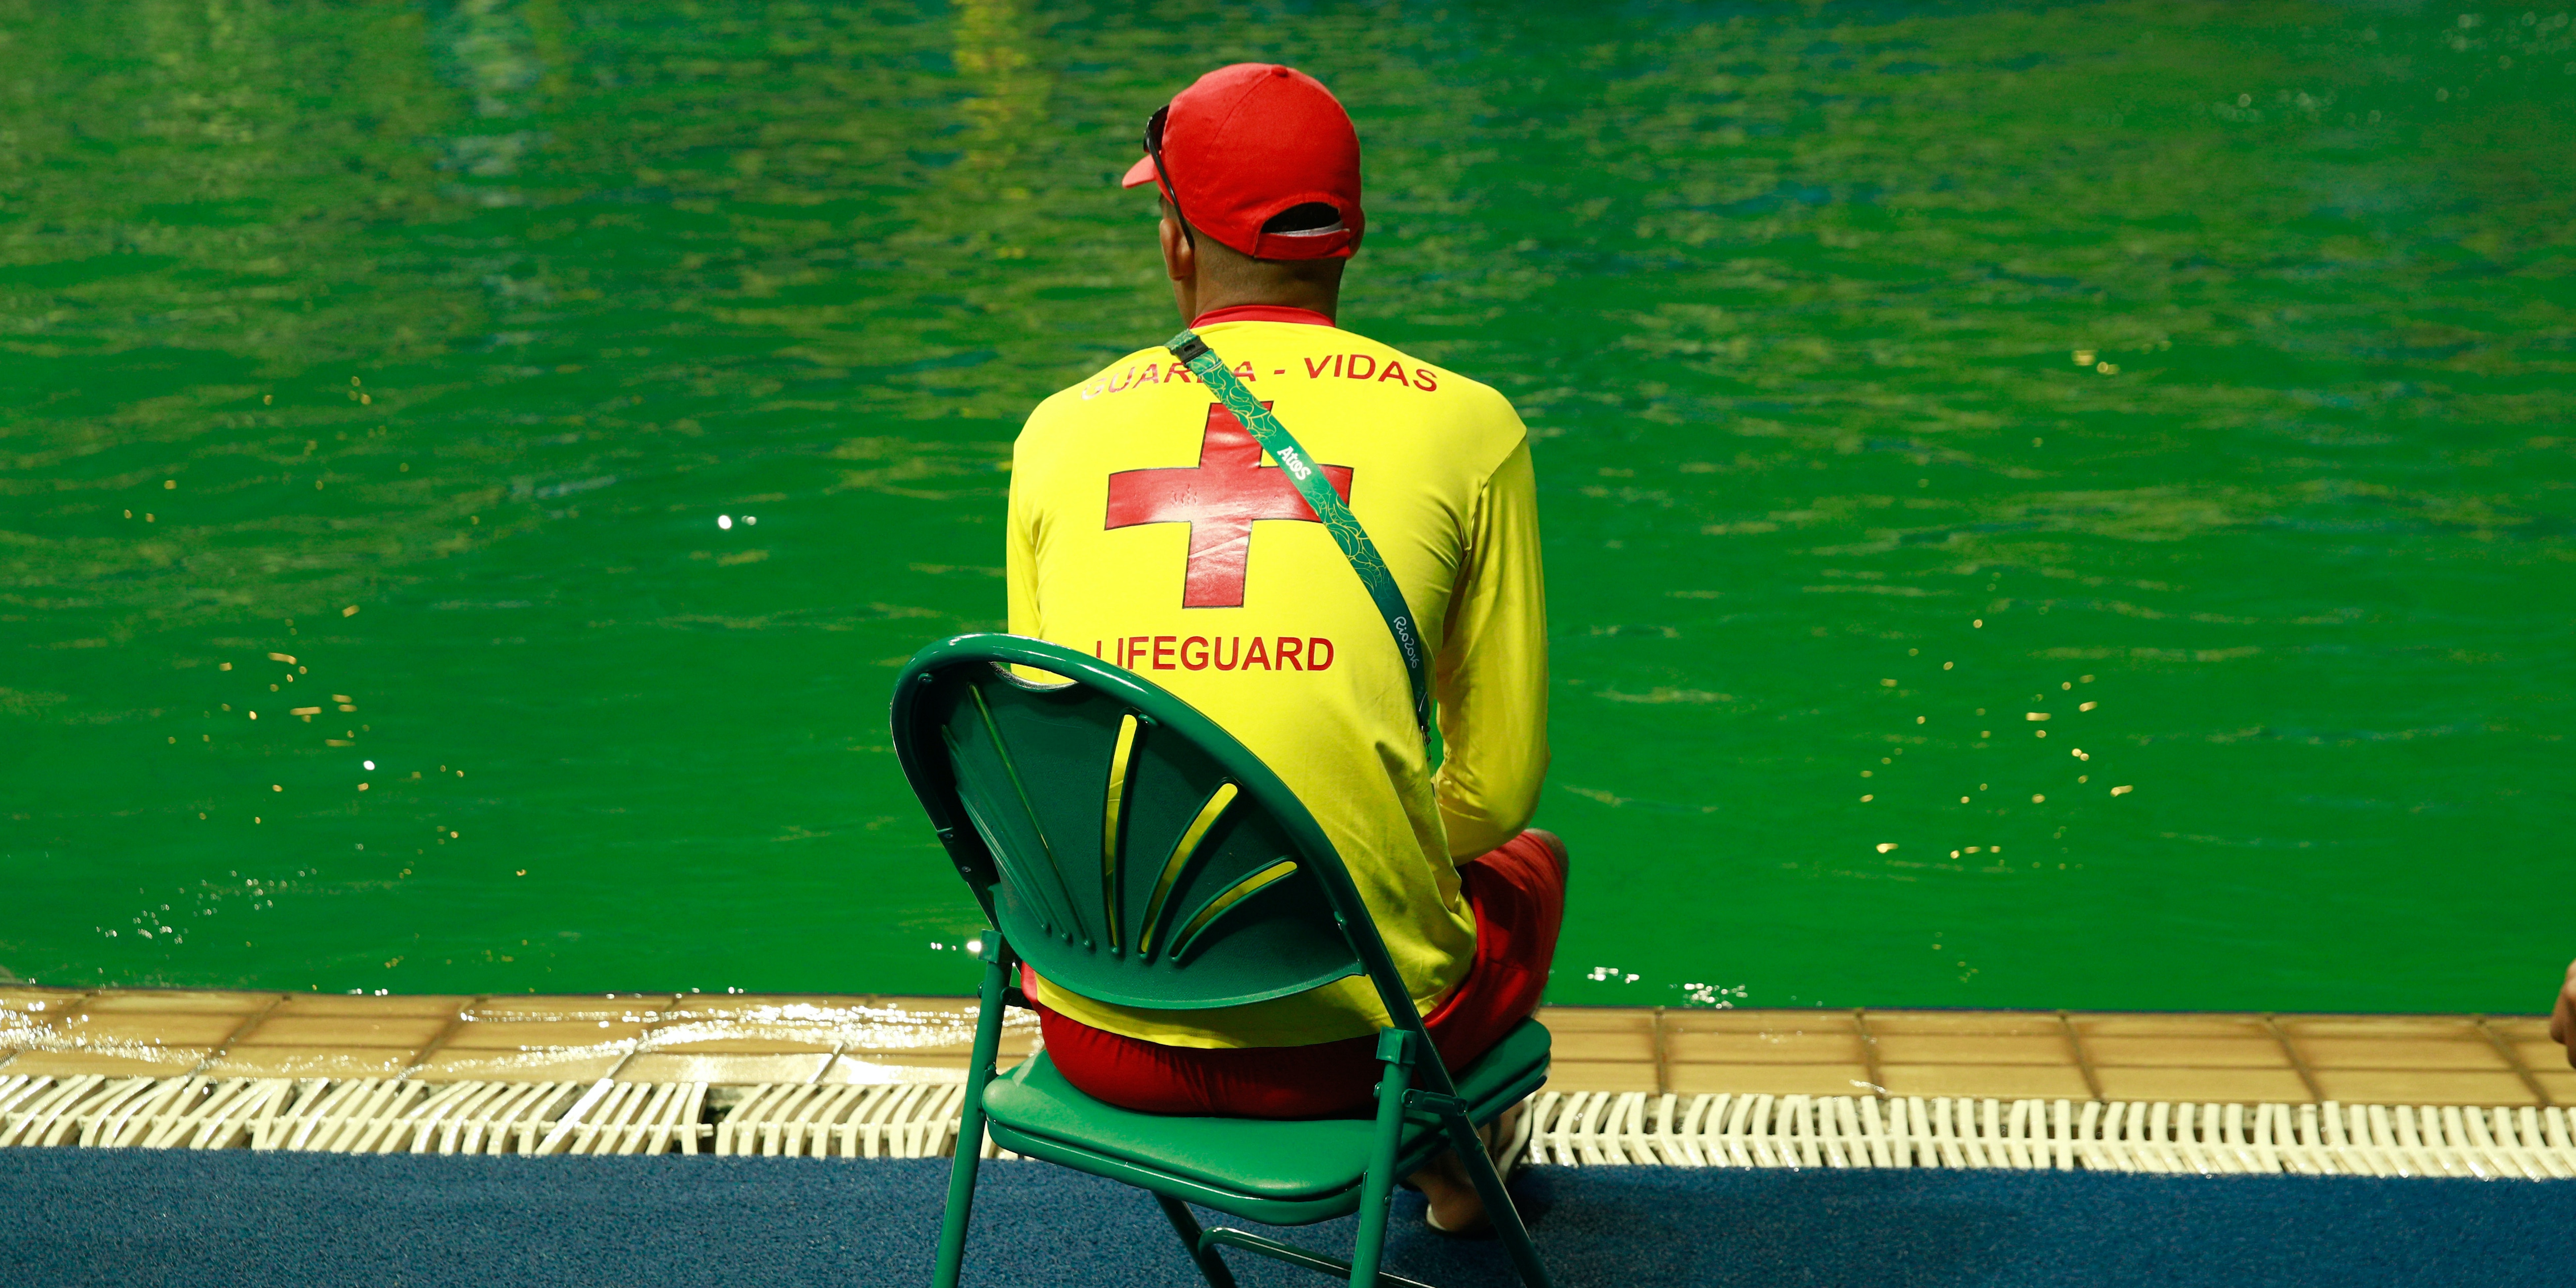 A lifeguard sits by the edge of the diving pool at Maria Lenk Aquatics Centre on Day 4 of the Rio 2016 Olympic Games at Maria Lenk Aquatics Centre on August 9, 2016 in Rio de Janeiro, Brazil.